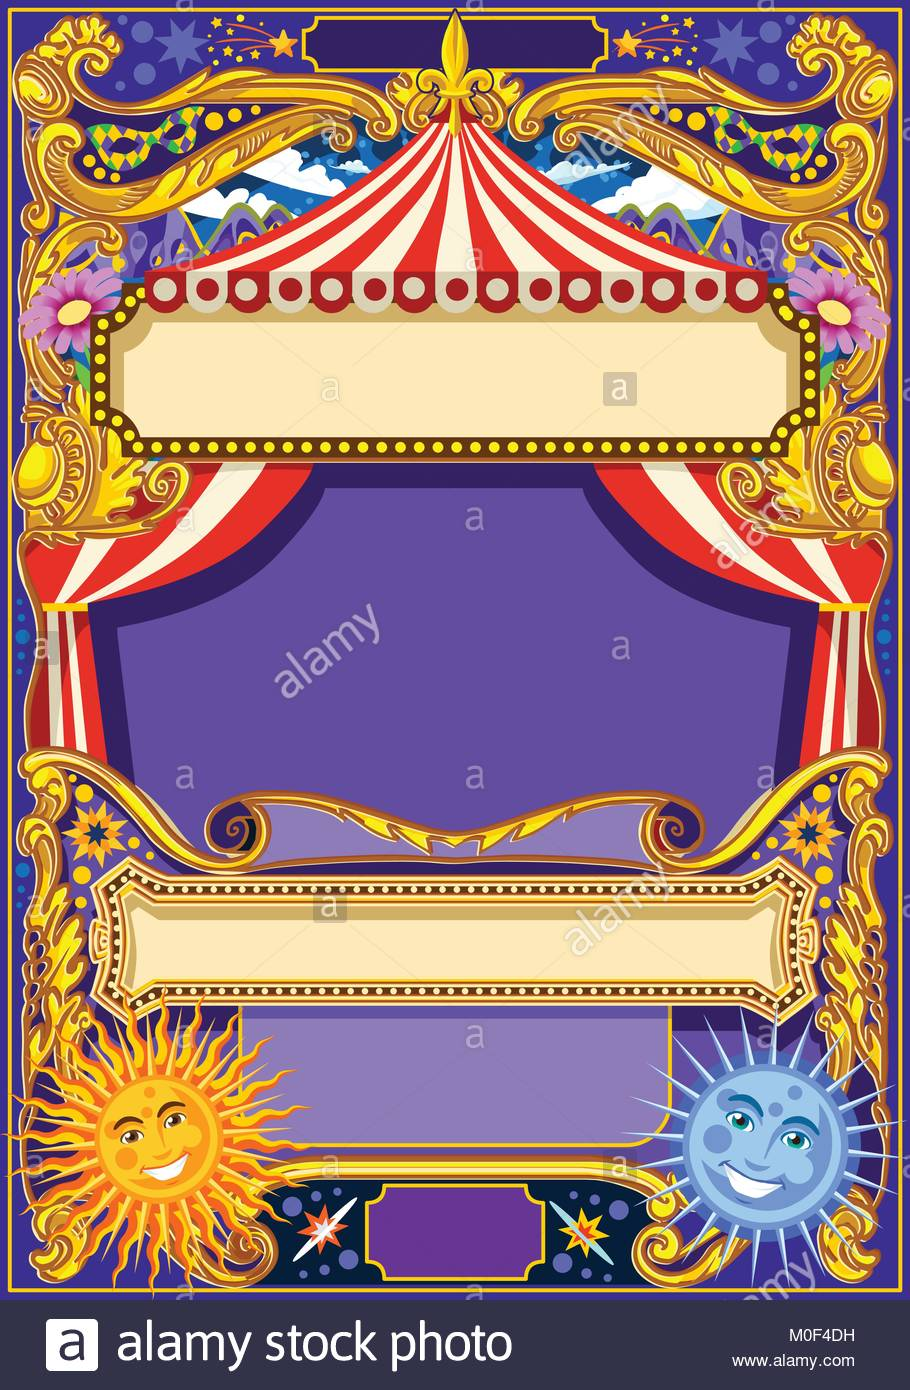 Circus Background Theme Vintage Frame With Tent For Kids Birthday Party Invitation Or Post Quality Template Vector Illustration